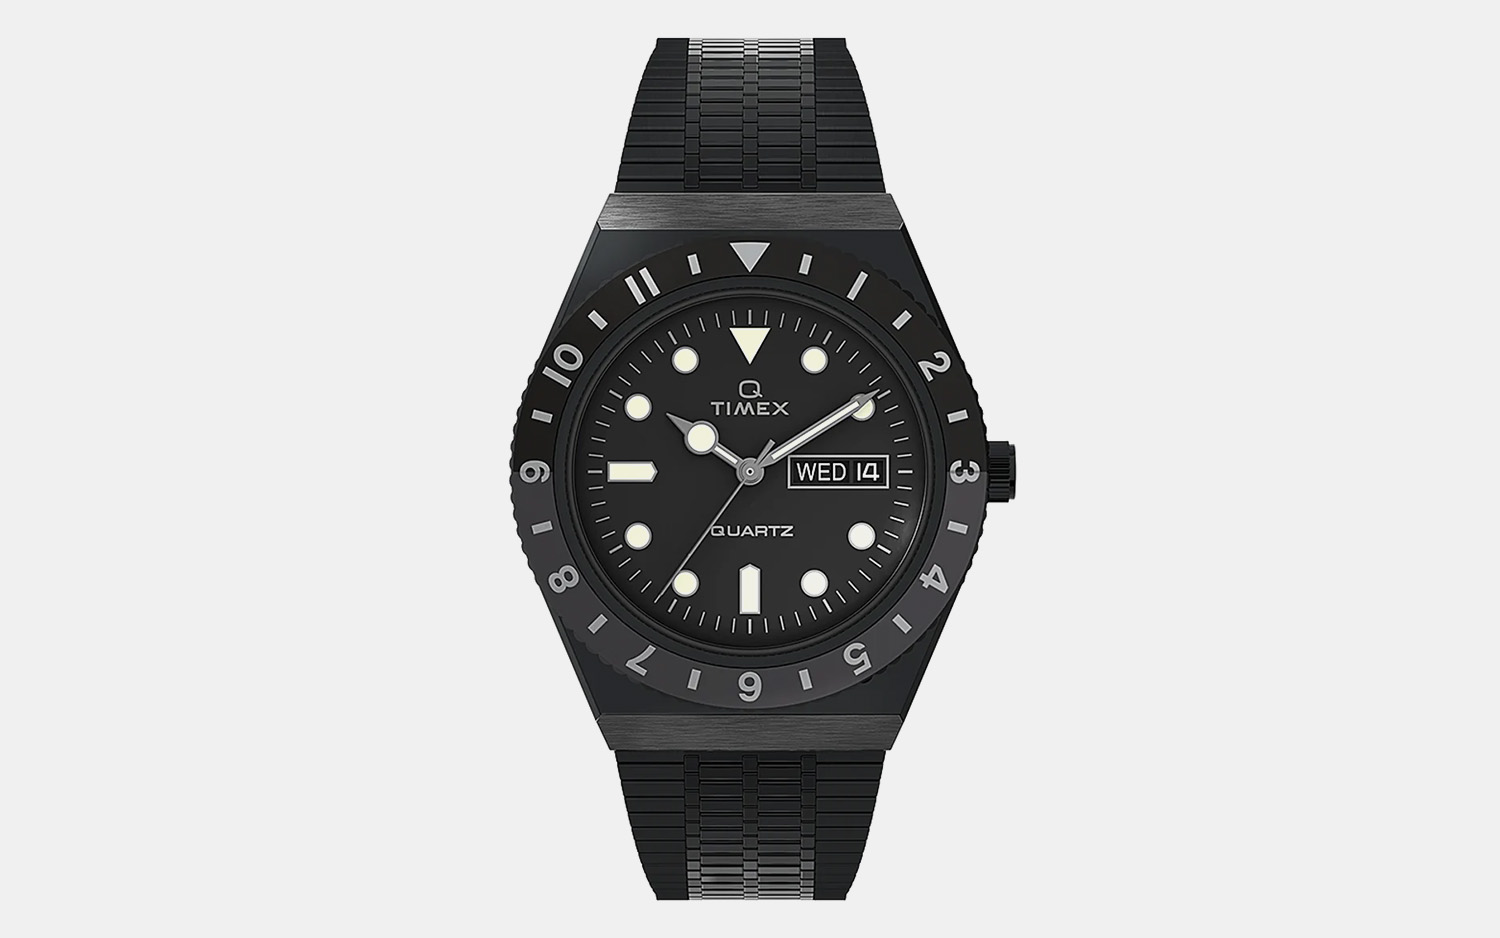 Q Timex Reissue Blacked Out Watch